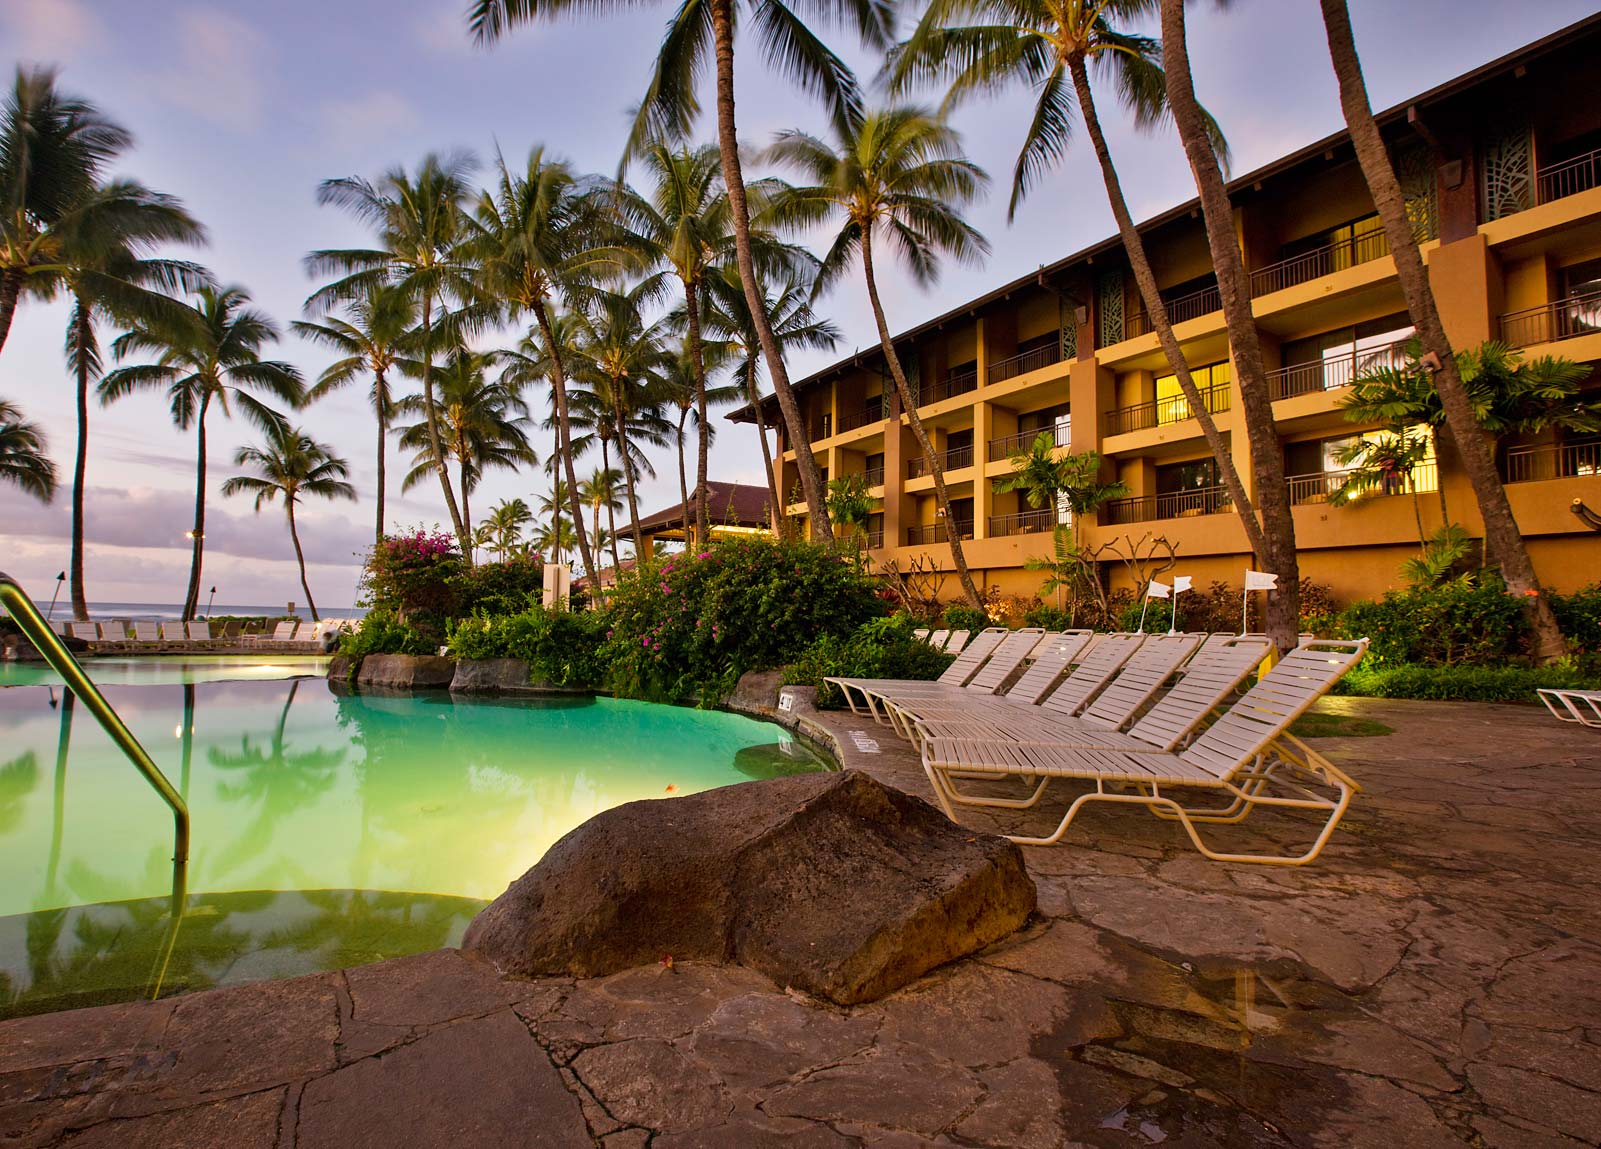 Kauai All Inclusive Vacations